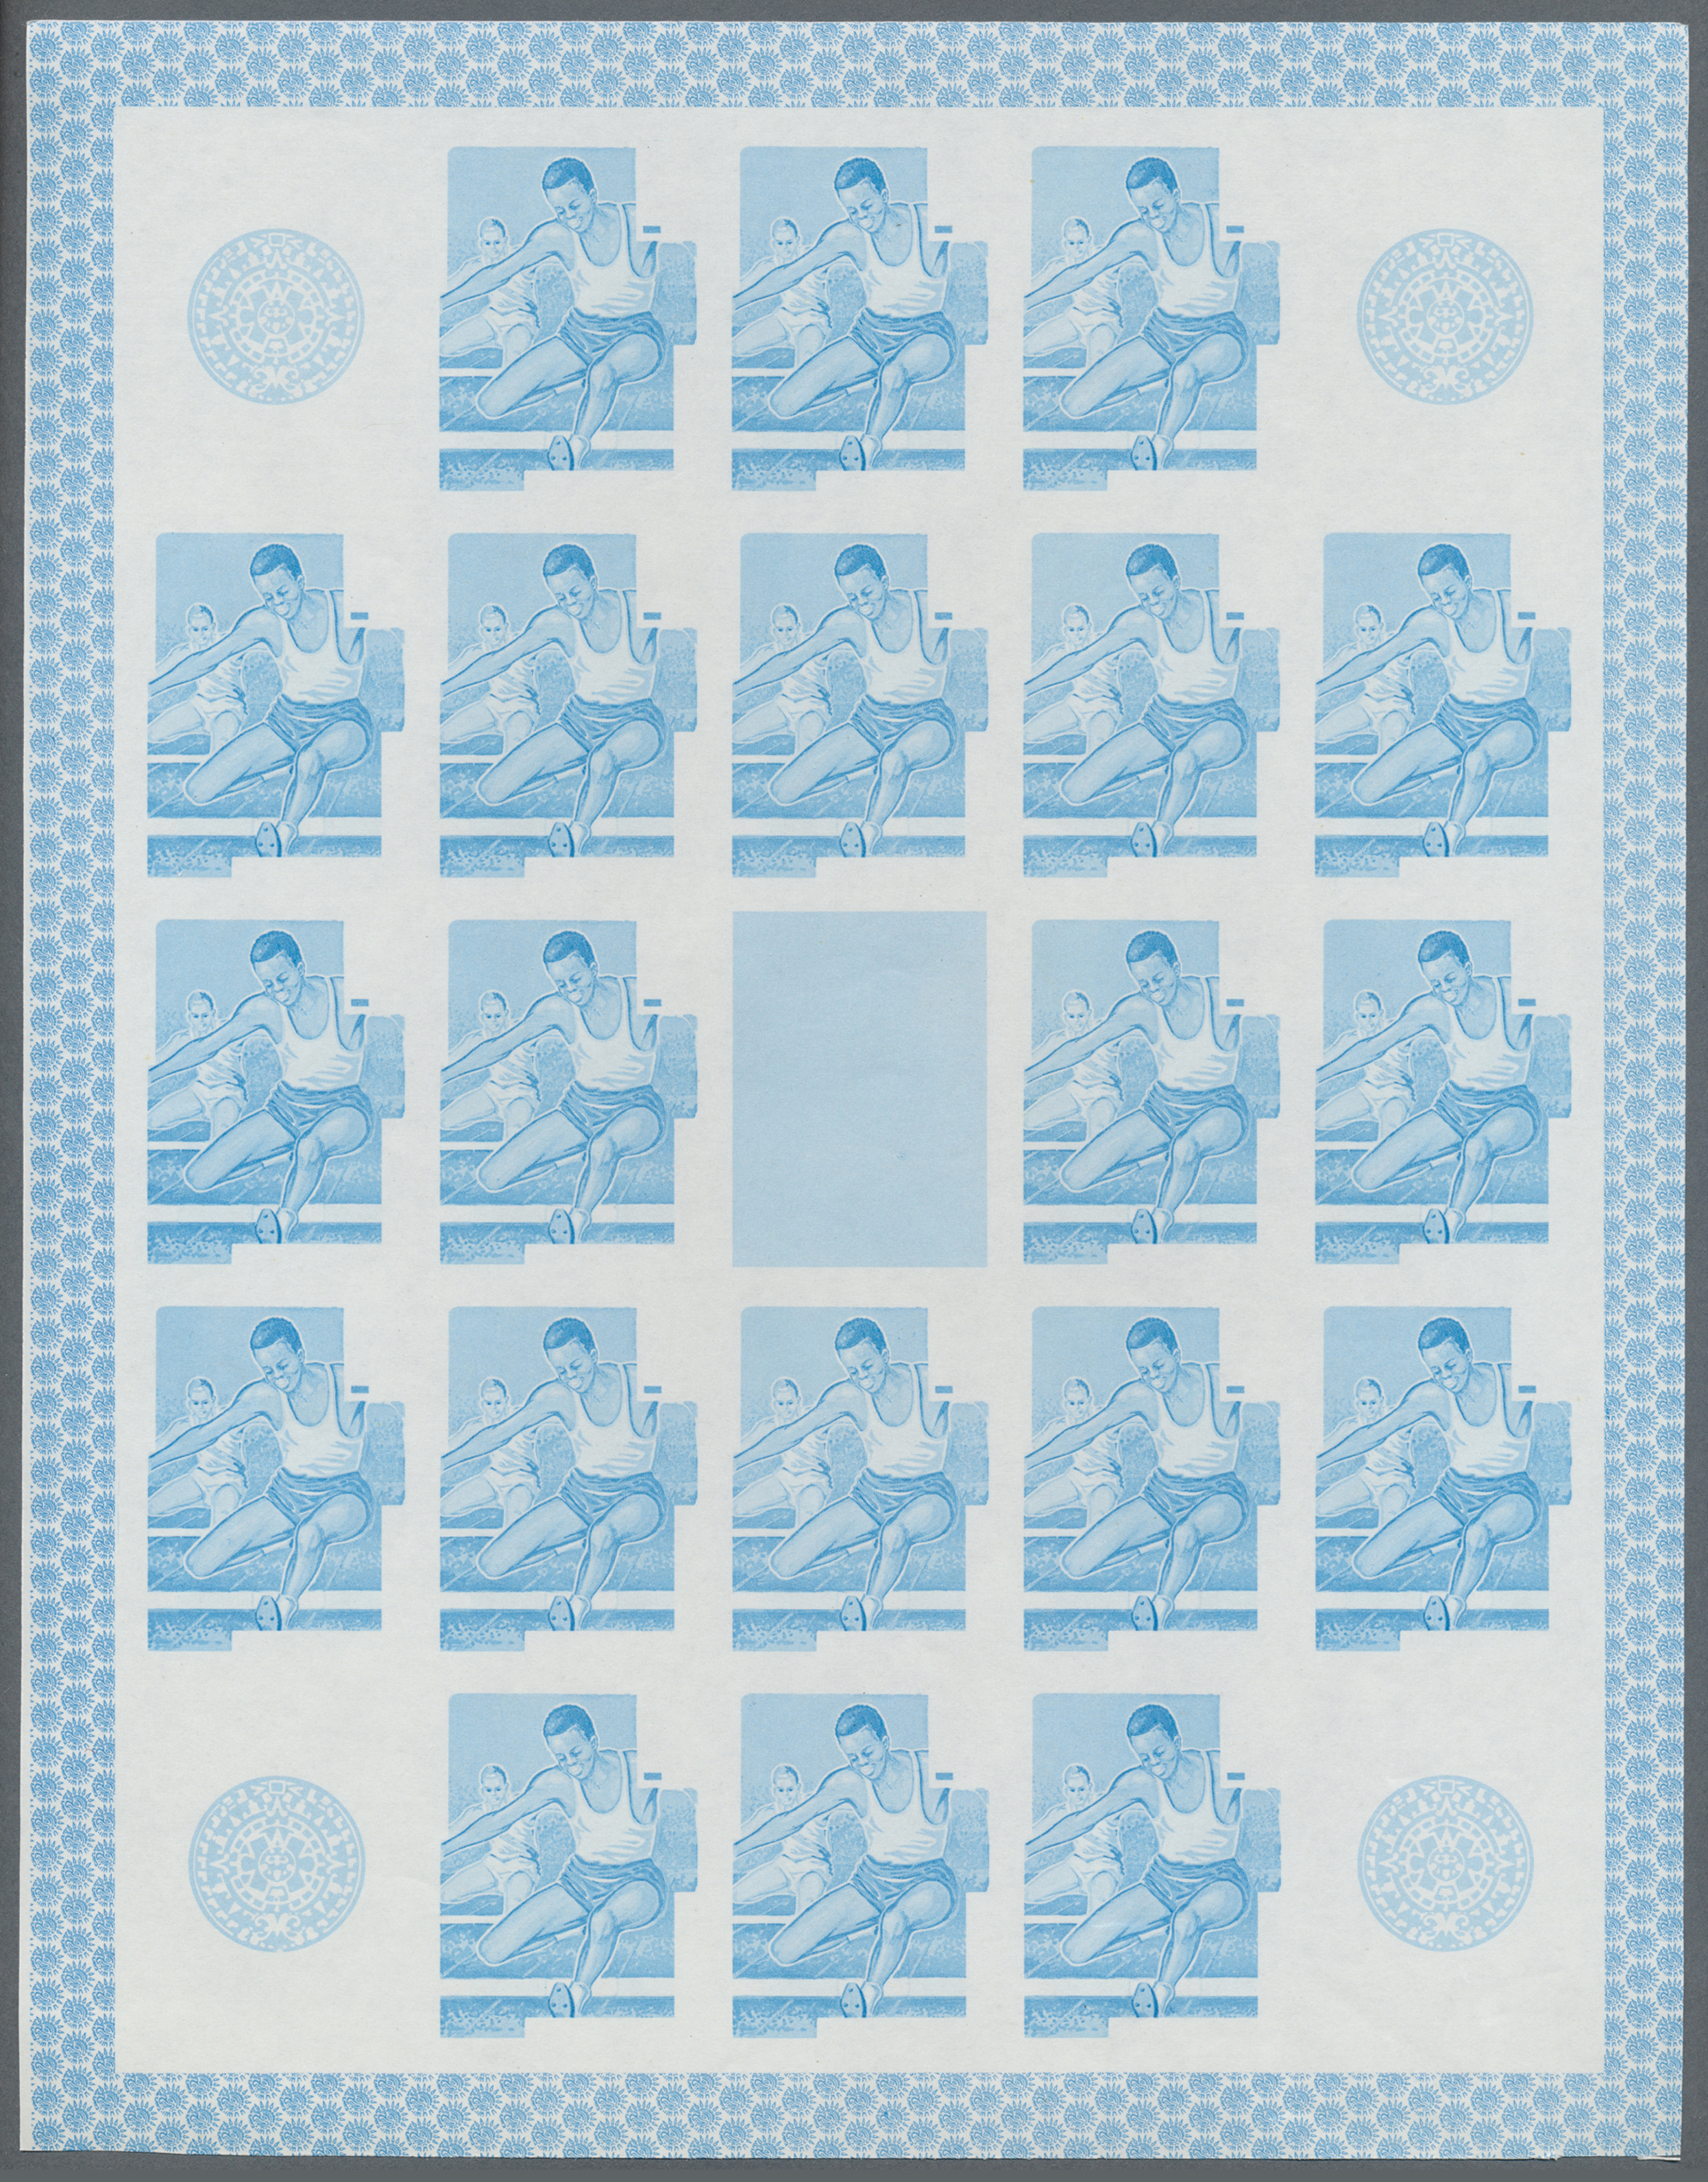 Lot 20885 - thematik: olympische spiele / olympic games  -  Auktionshaus Christoph Gärtner GmbH & Co. KG Sale #47 Collections: Overseas, Thematics, Europe